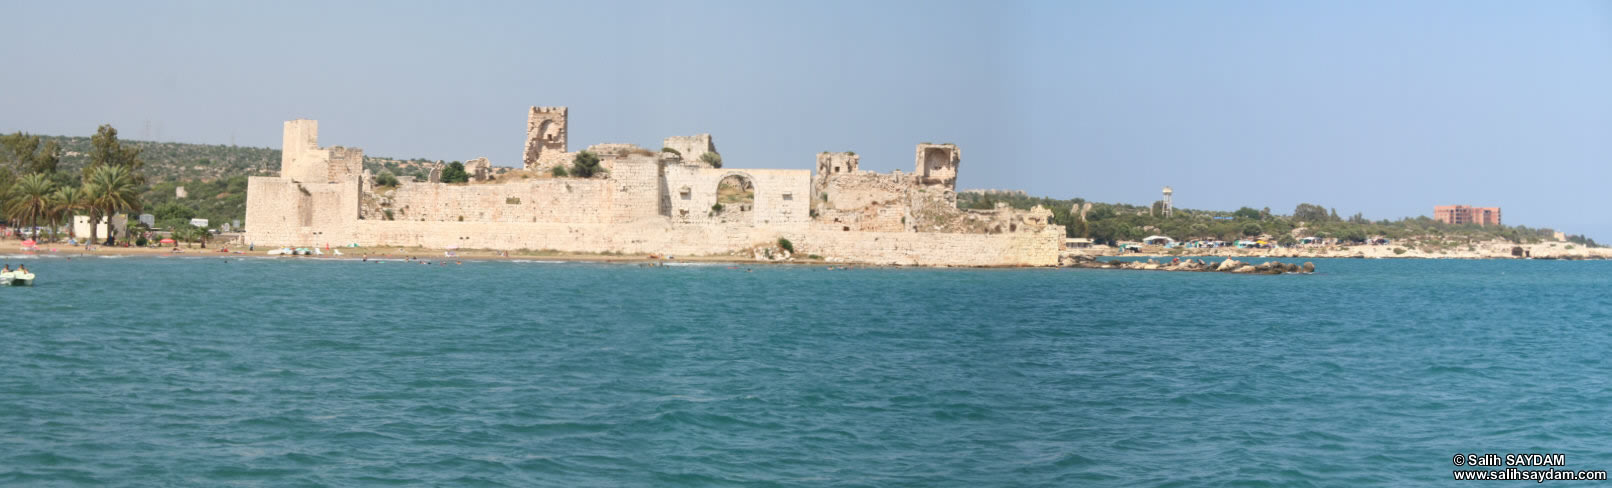 Panorama of Outer Castle (Korykos, Maiden's Castle) 3 (Mersin, Erdemli, Maiden's Castle)